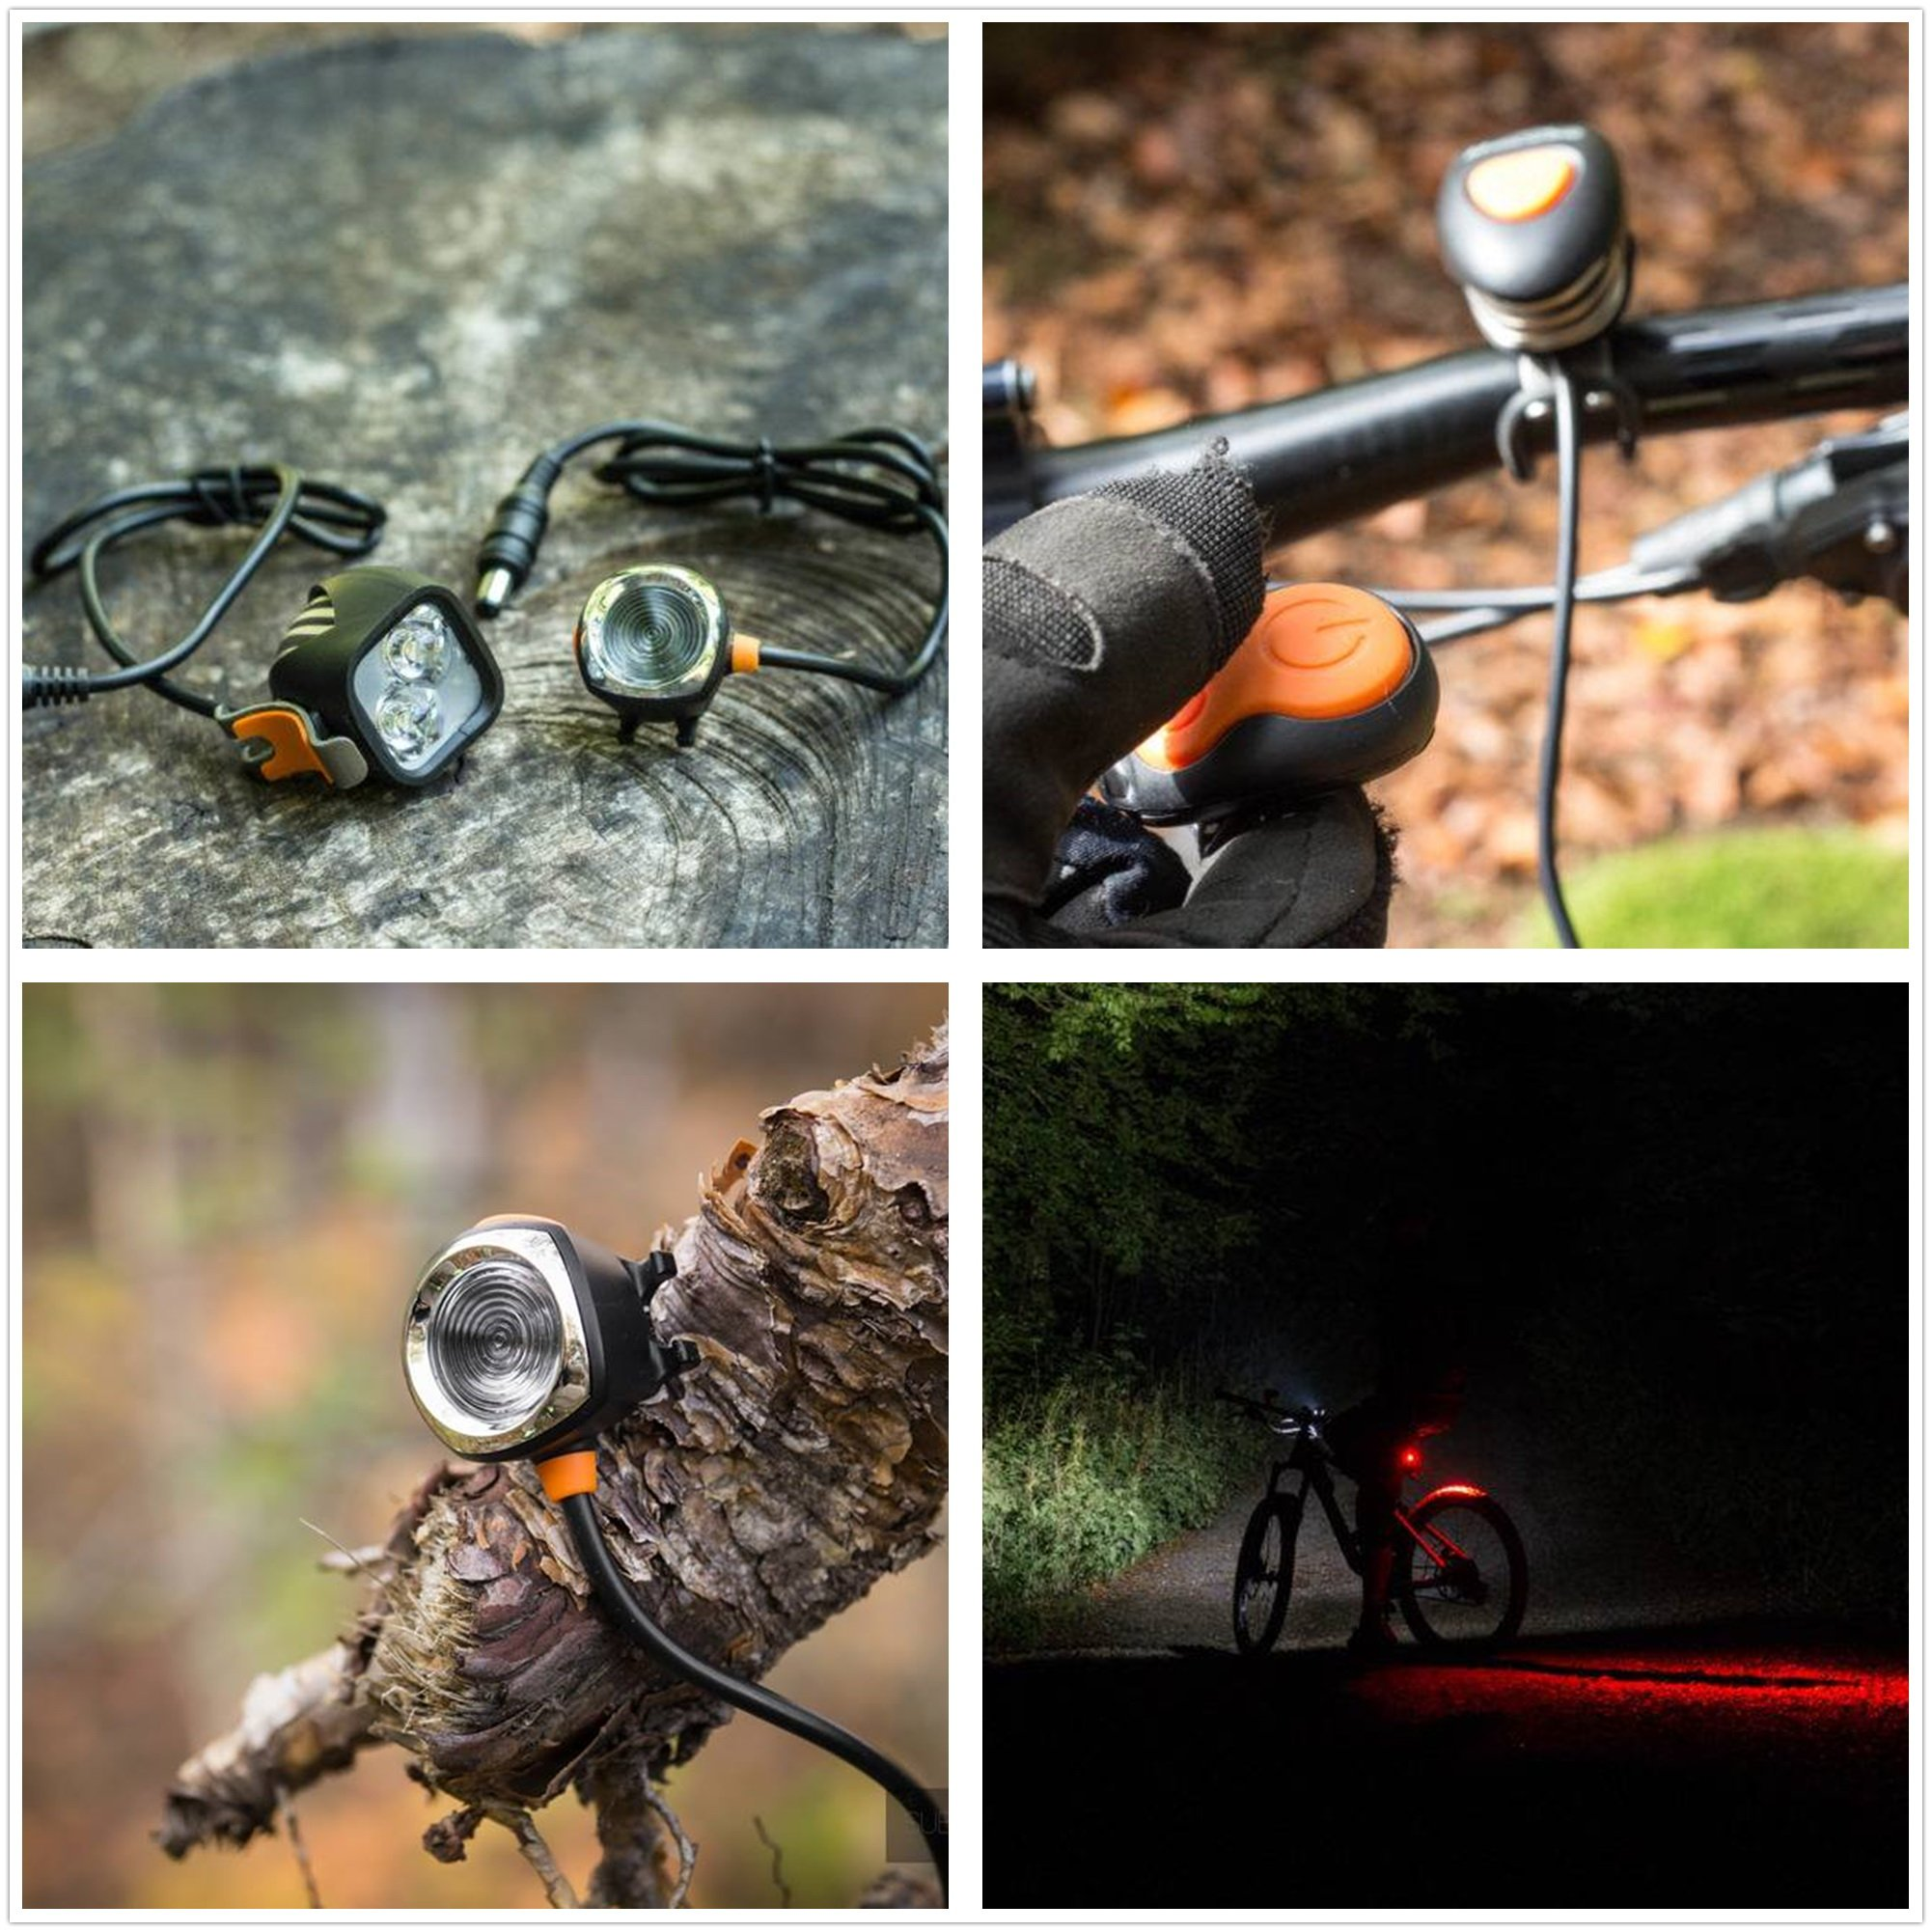 Magicshine MJ 902, 1600 Lumens Bike Light Set, Wireless Remote Bicycle Lights Front And Rear Combo, Rechargeable 2 CREE XM-L2 LED Bike Tail Light, Portable & Convenient Bright Bike Light by Magicshine (Image #9)